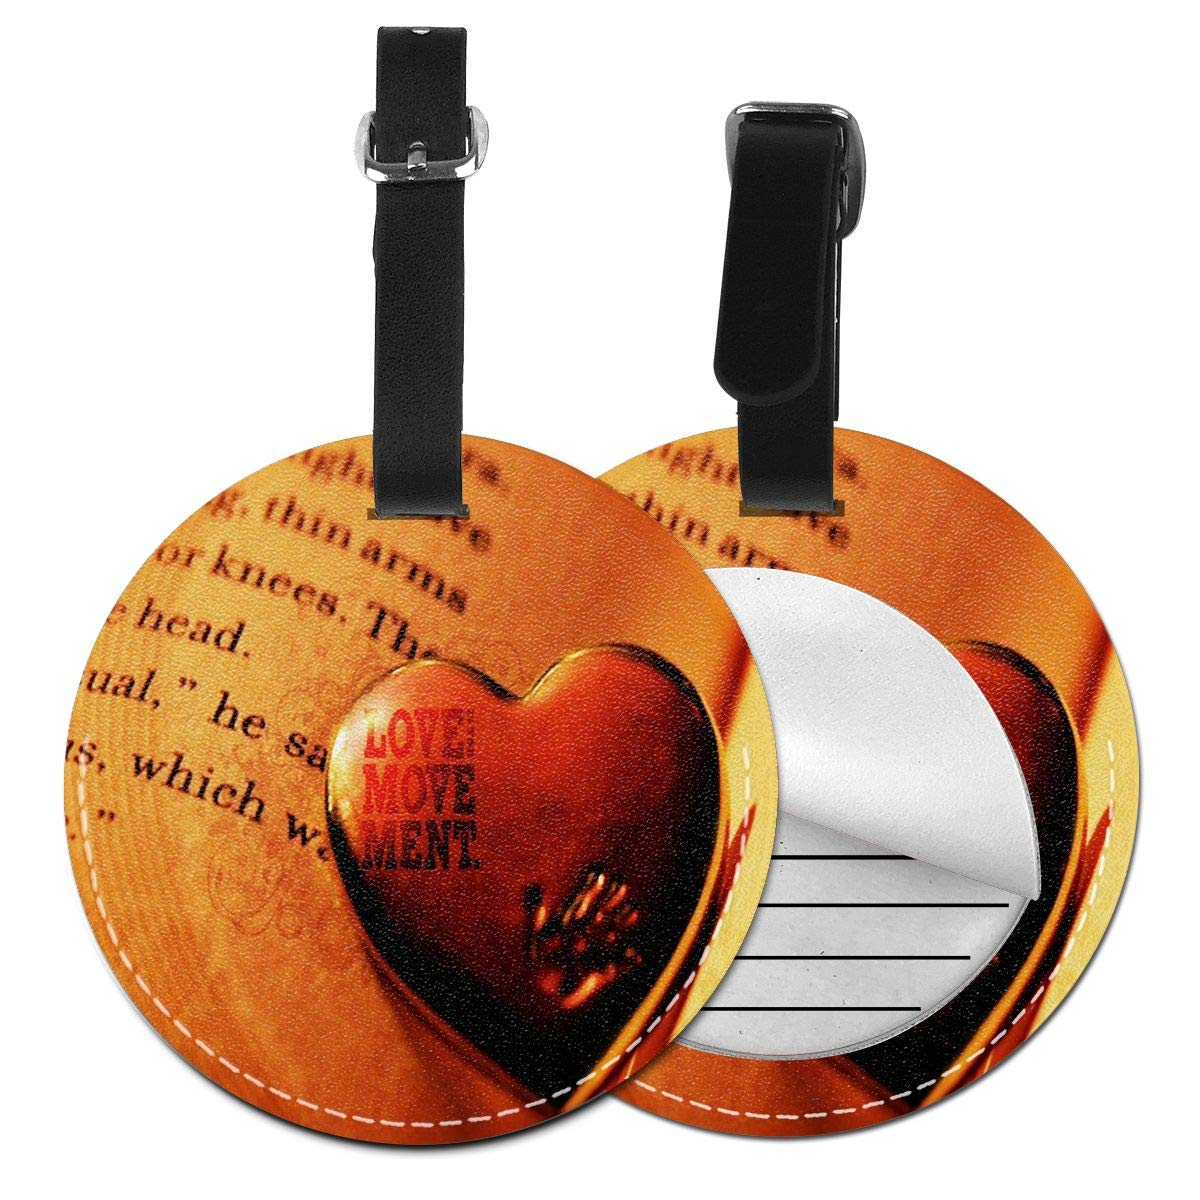 Love Book Wallpaper Luggage Tags Leather Name ID Labels with Back Privacy Cover for Travel Bag Suitcase 4 Pack by Rachel Dora